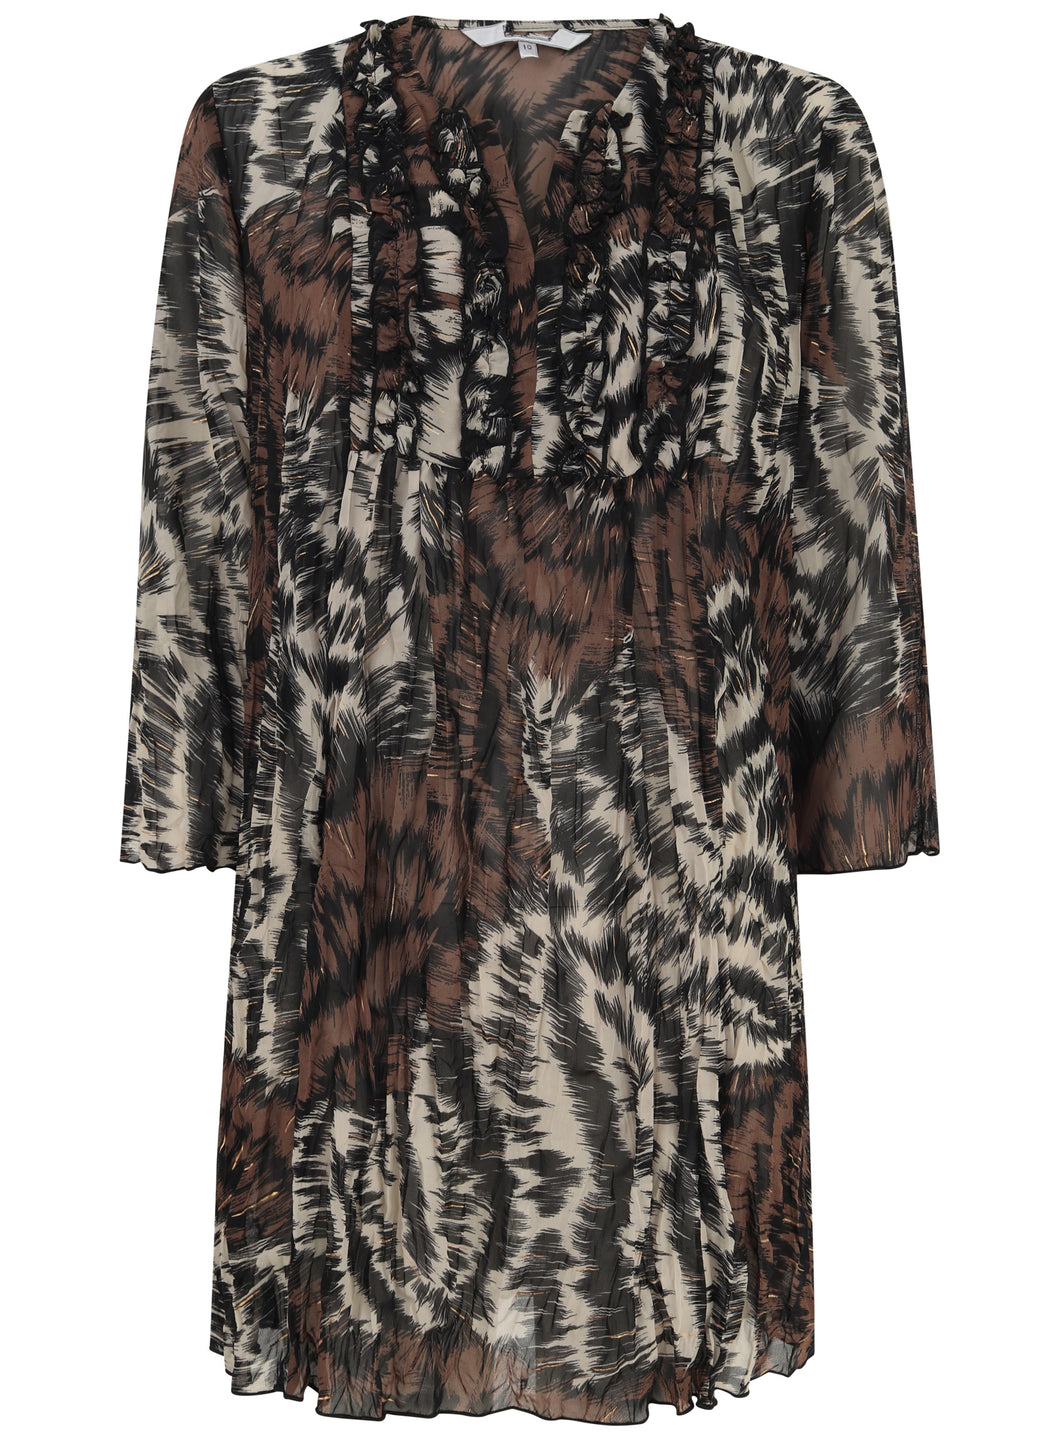 Ladies V Neck Ruffle Leopard Print Brown Blouse Top